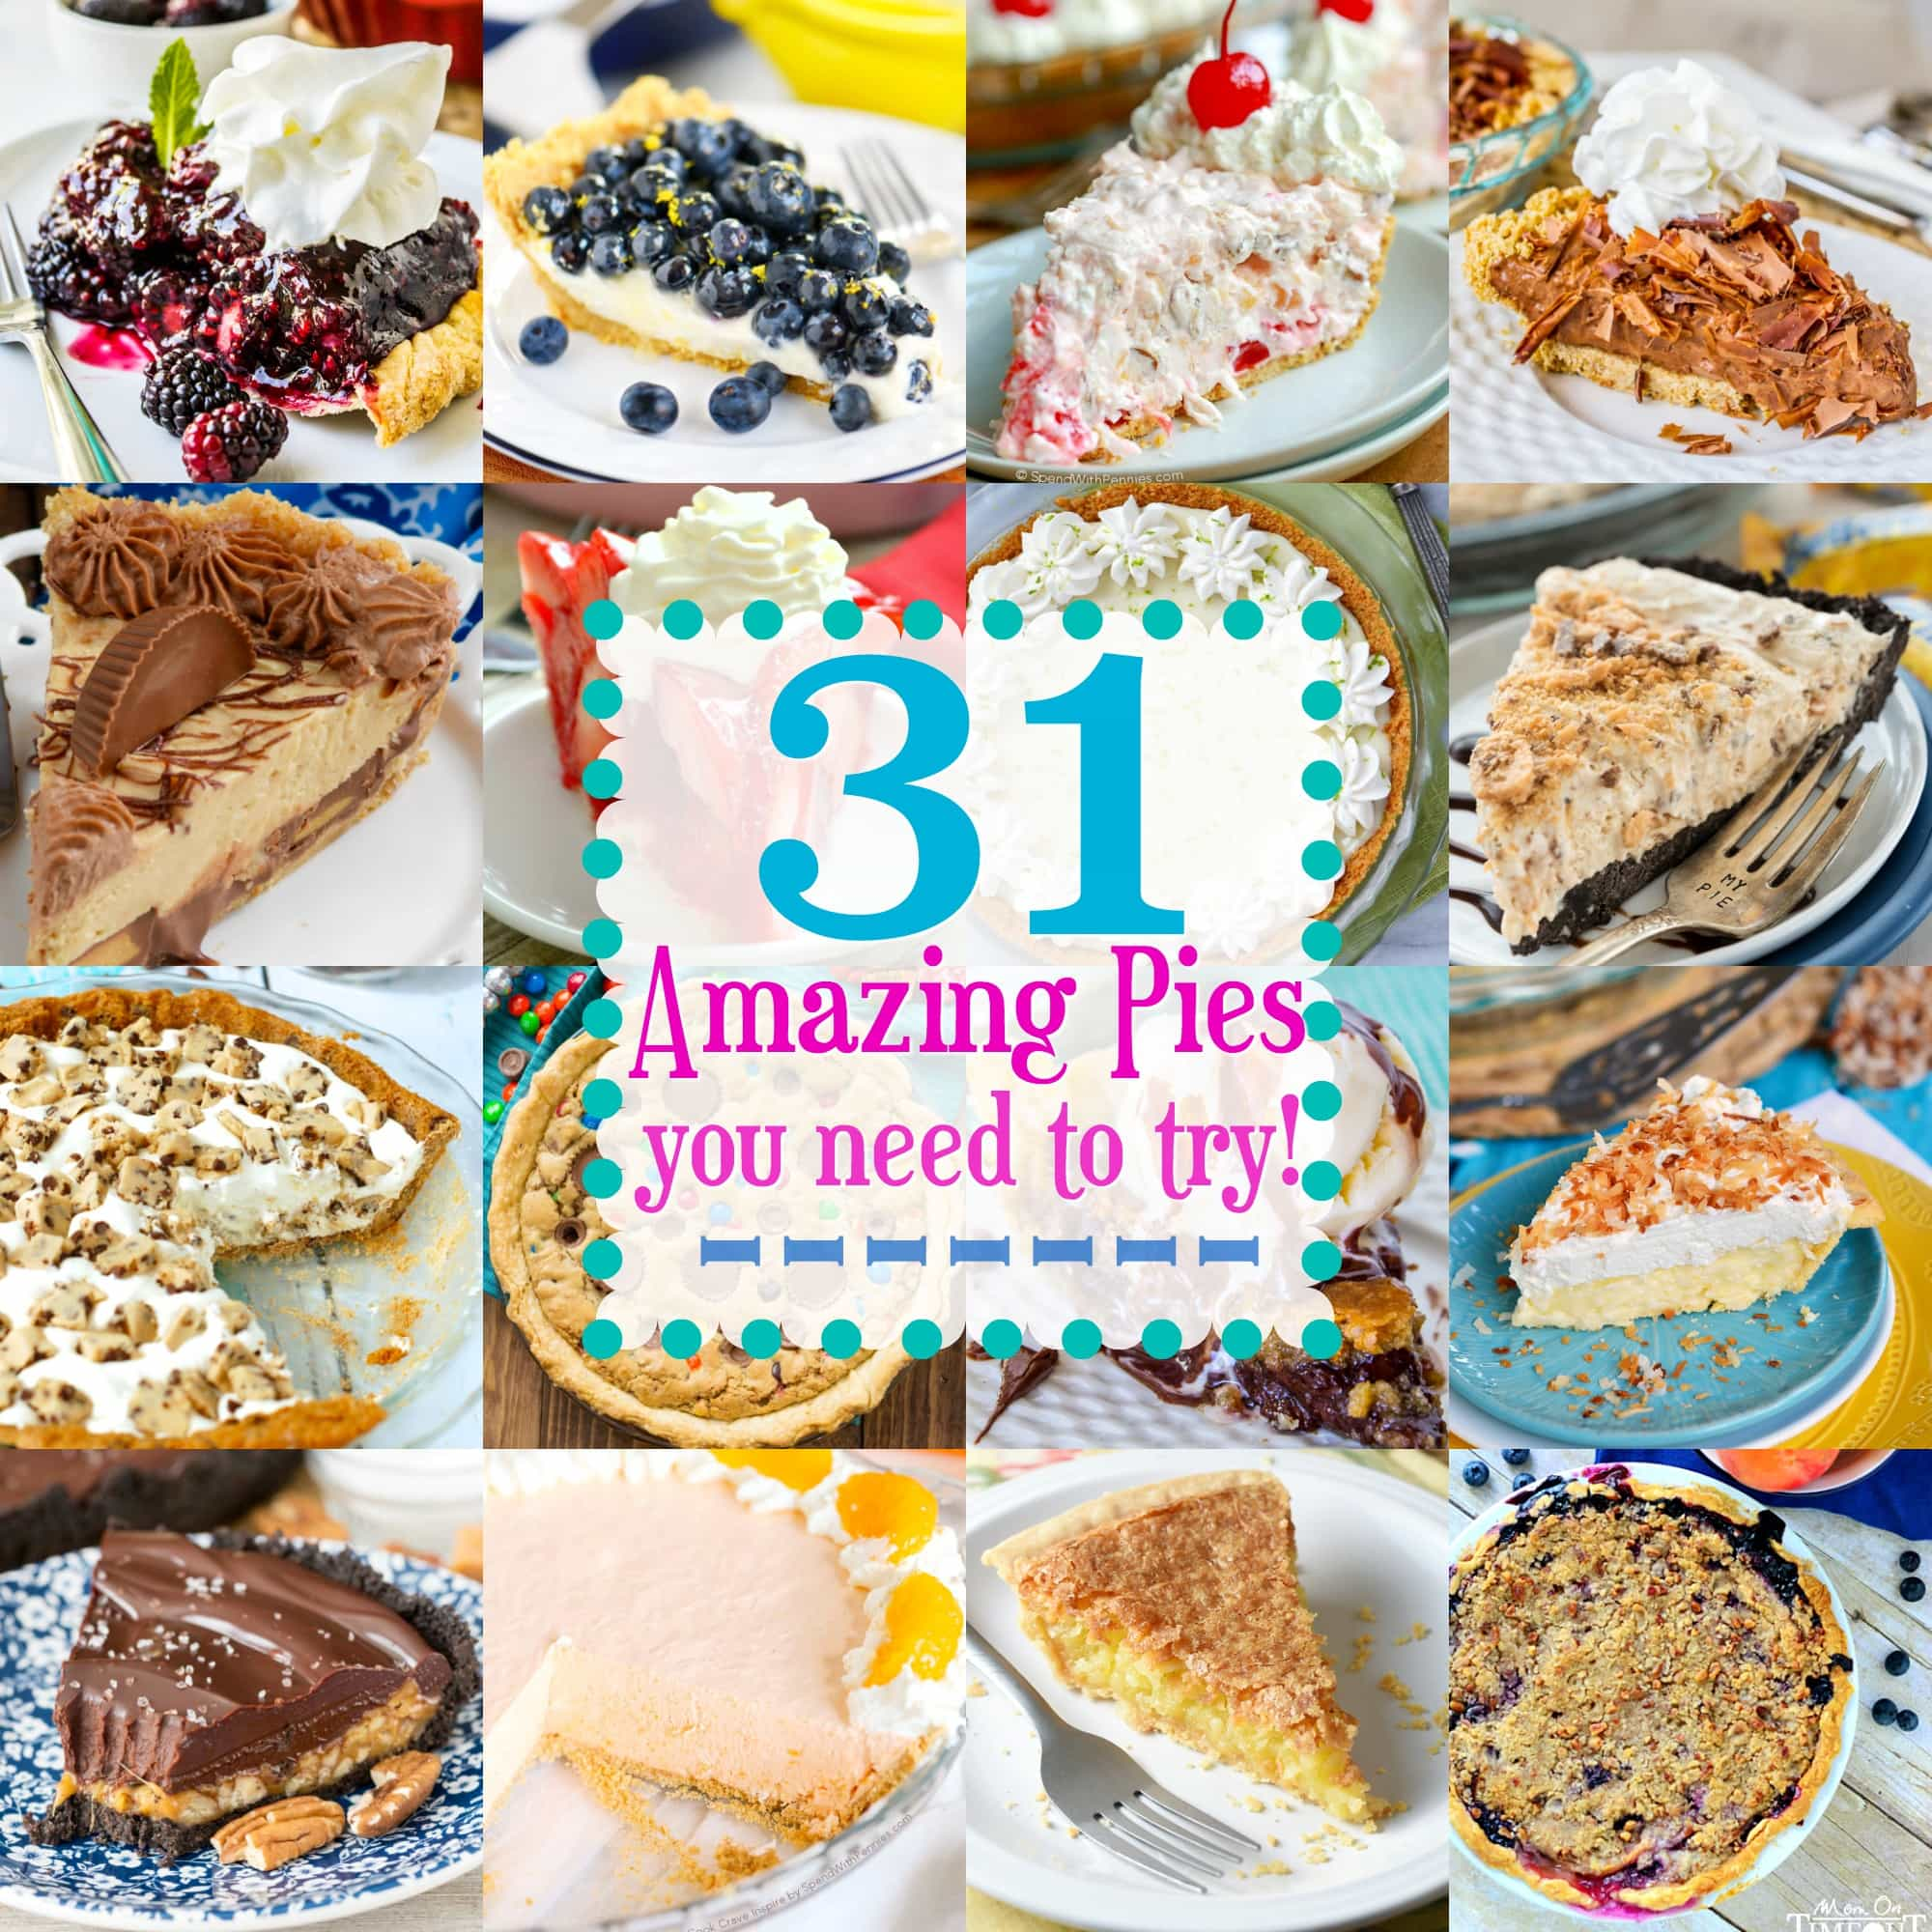 My love for pie is completely irrational! Celebrate Pi Day with one of these 31 Amazing Pies You Need to Try! Chocolate, berry, no bake - you'll find a pie for every occasion in this fantastic round up! // Mom On Timeout